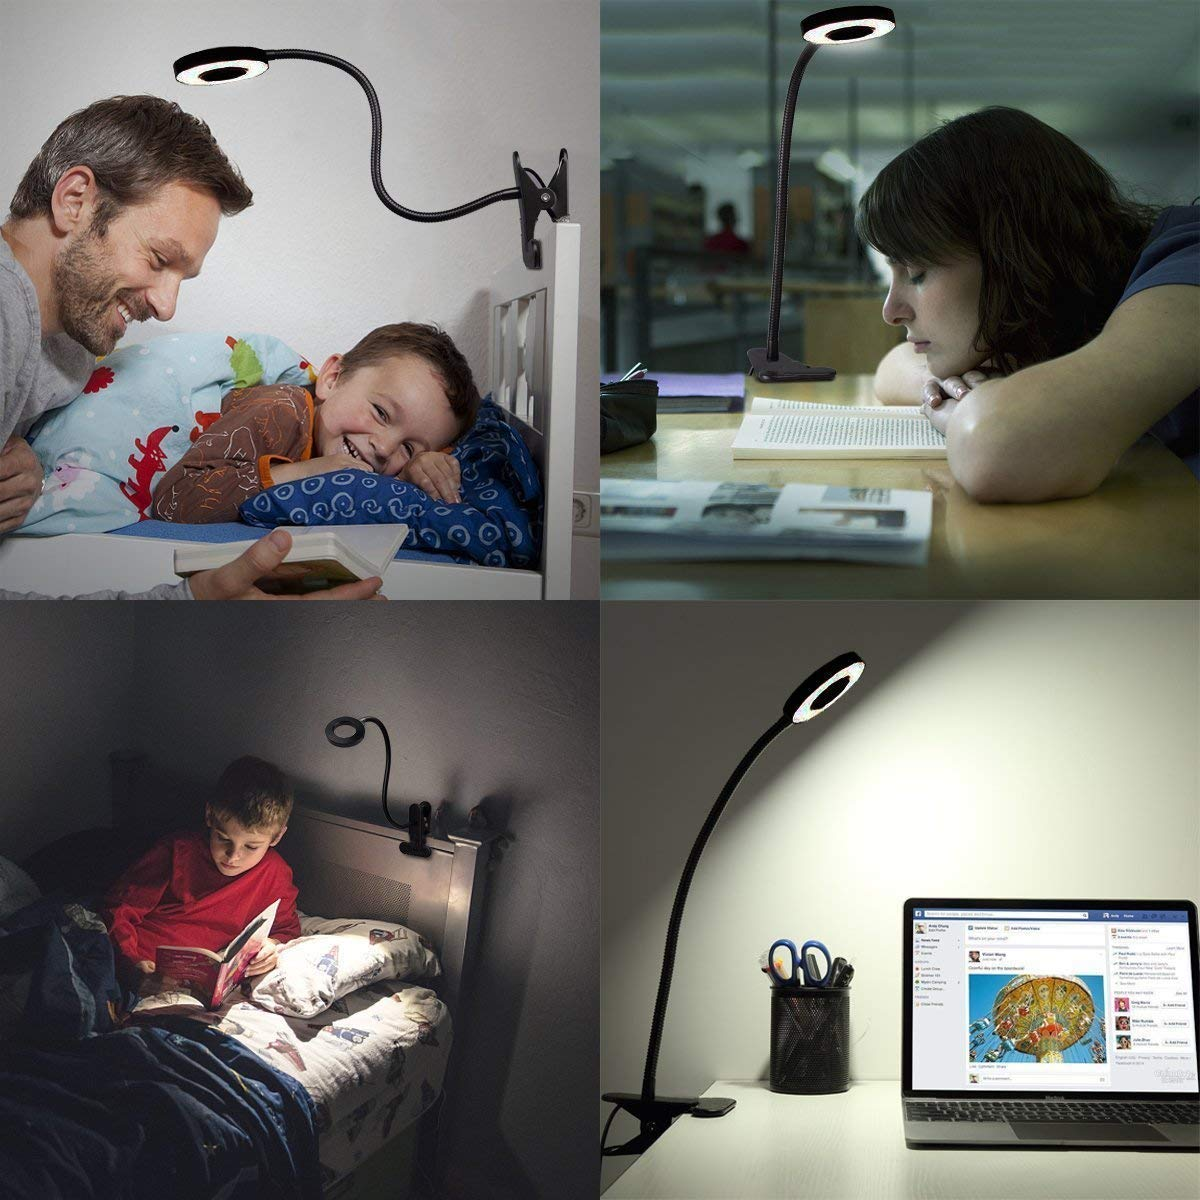 12W LED Reading Light Clip on Light with 3 Lighting Modes 2 Dimming Levels,DZLight Eye-Care Flexible Clip on Lamp for Desk,Bed Headboard and Computers,USB Adapter Included by DZLight (Image #4)